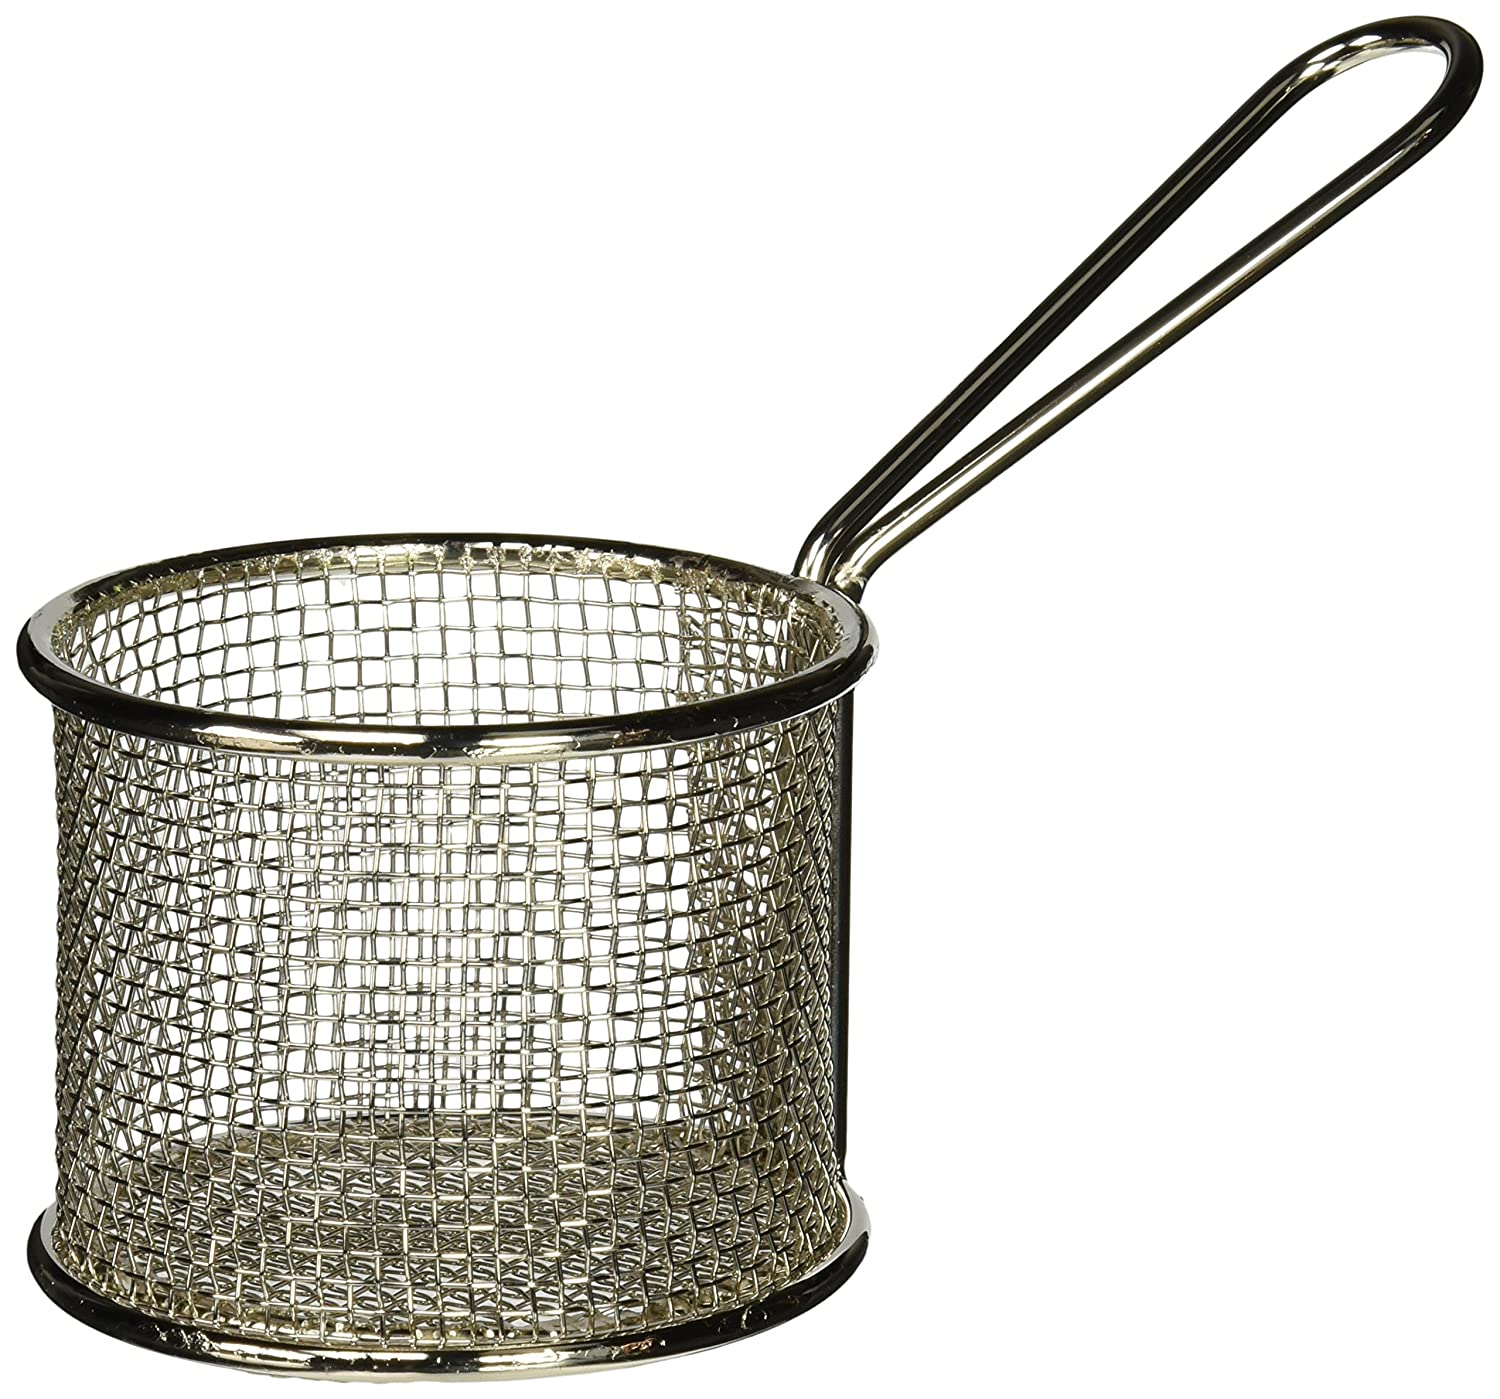 "American Metalcraft FRYR375 Fry Baskets and Cones, 3.75"" Diameter 2,75"" Height, Silver"